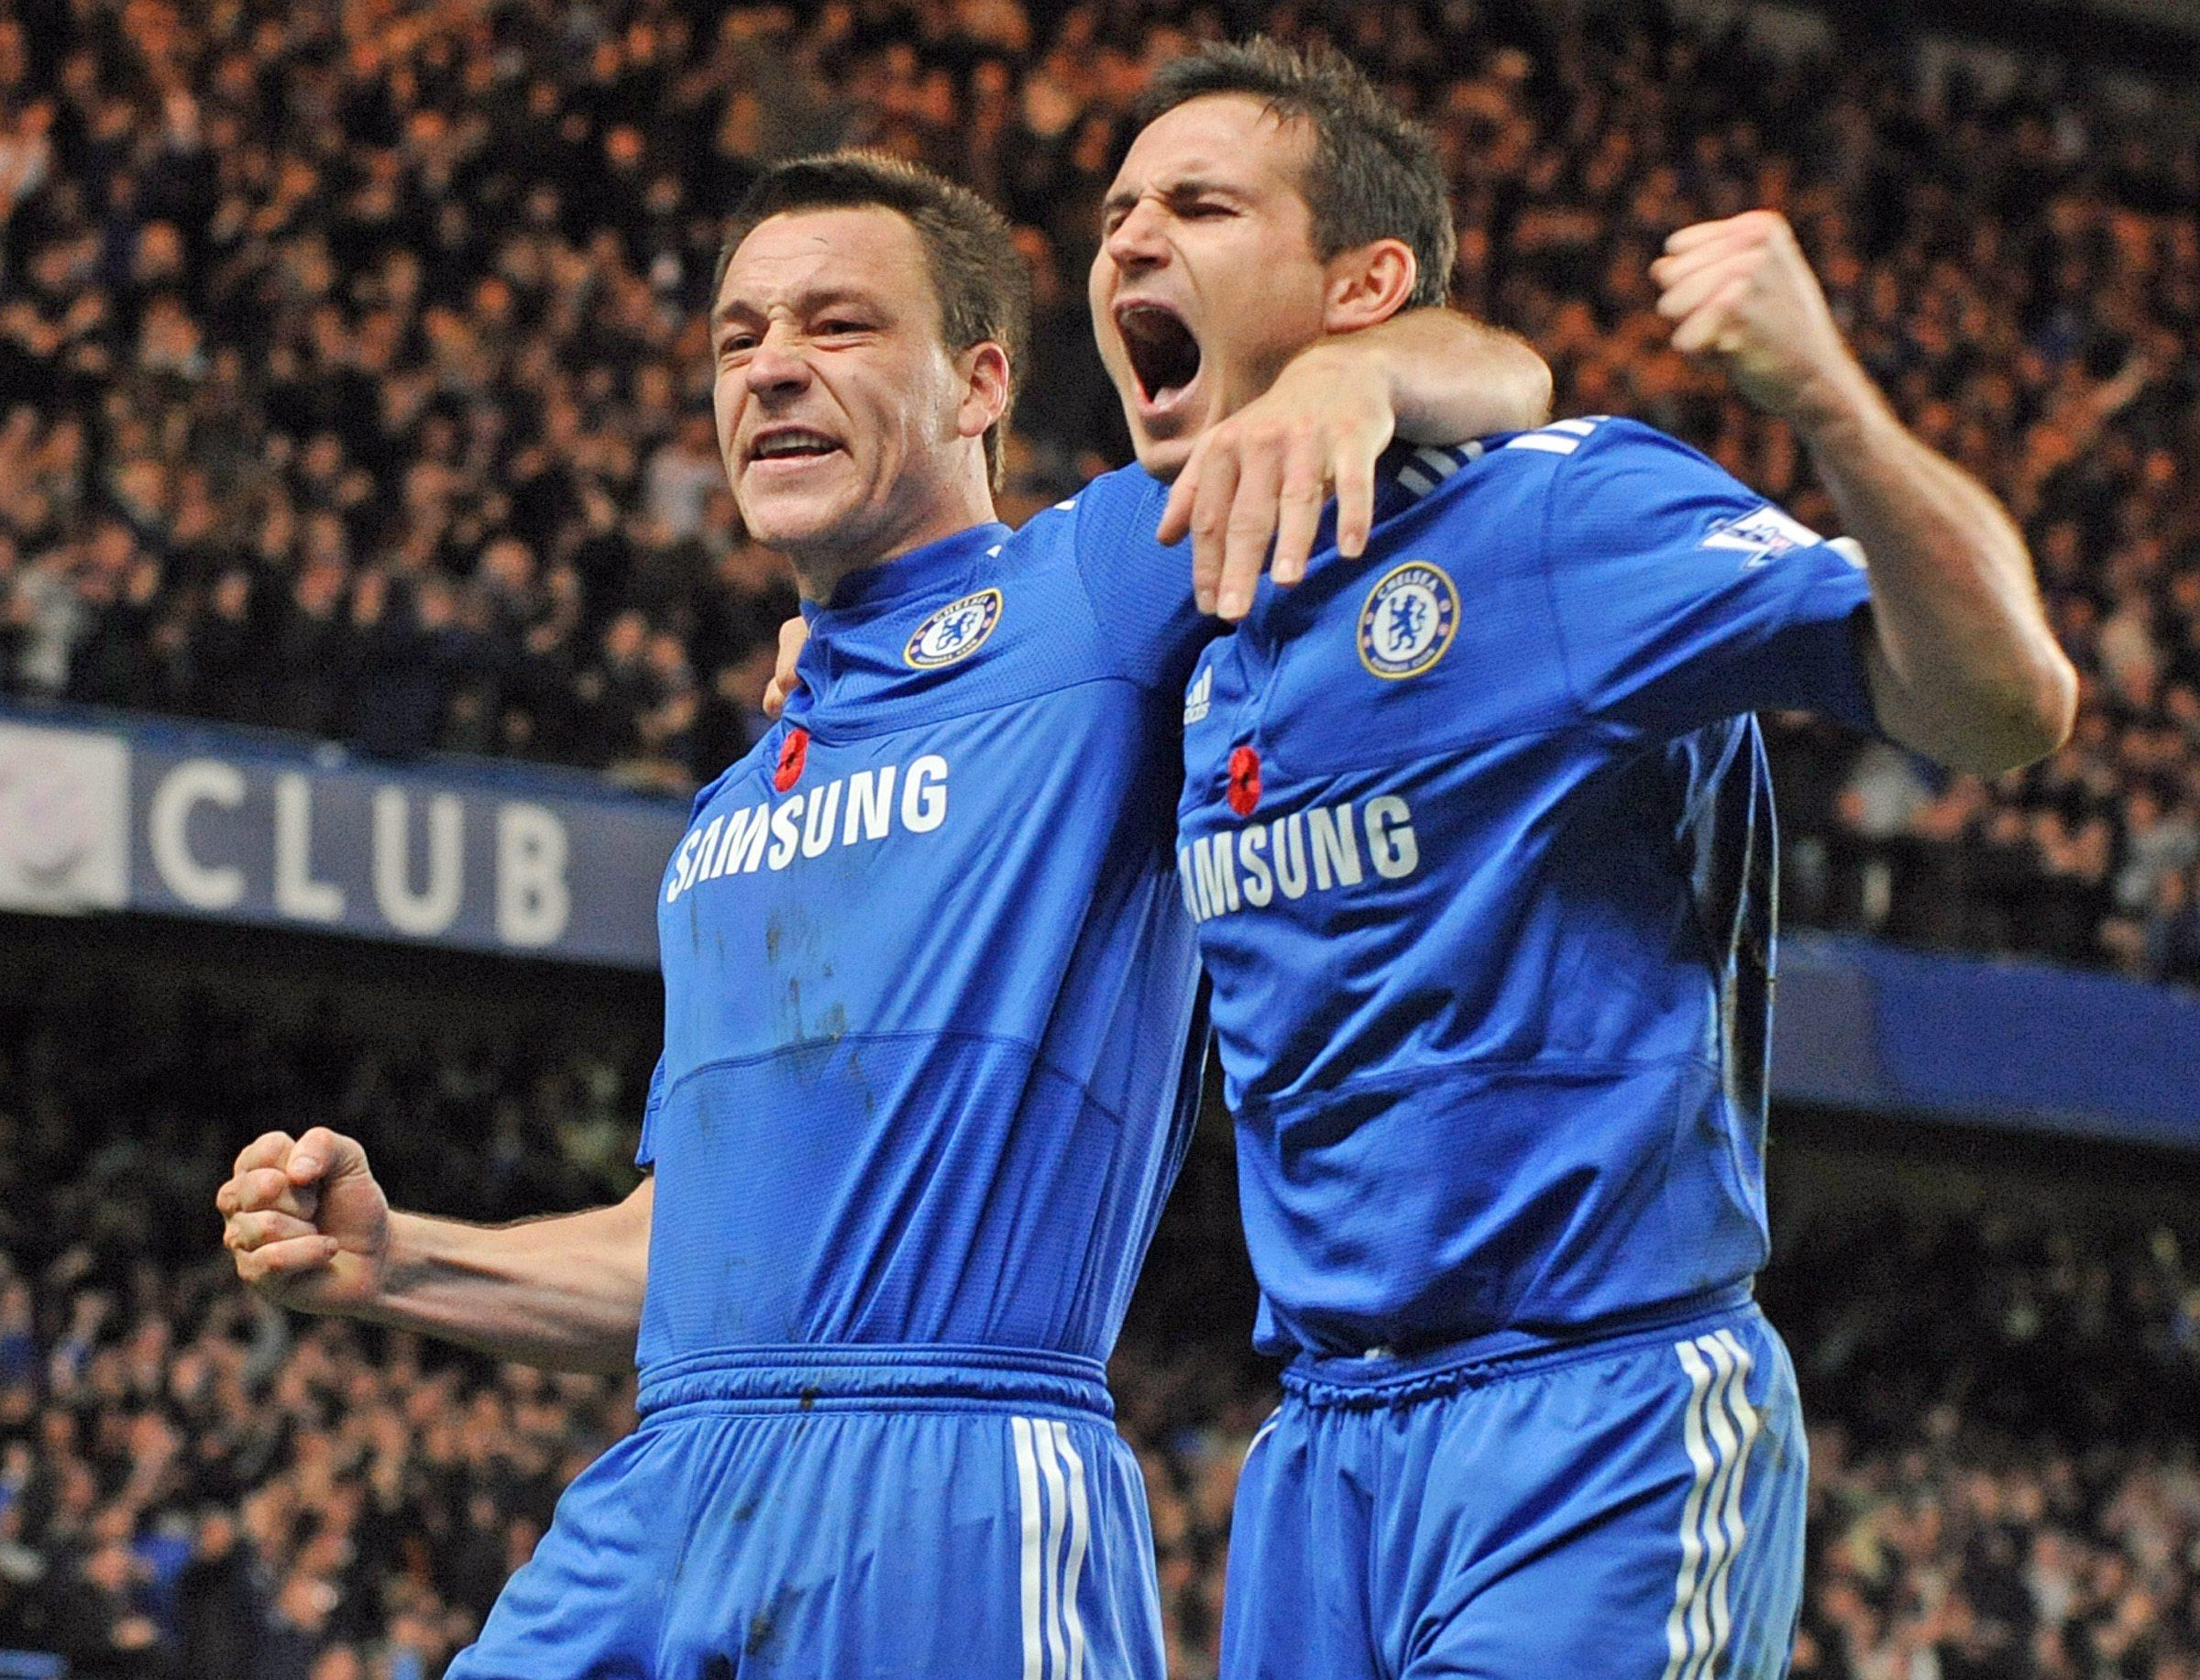 Two of the Premier League's all-time greats